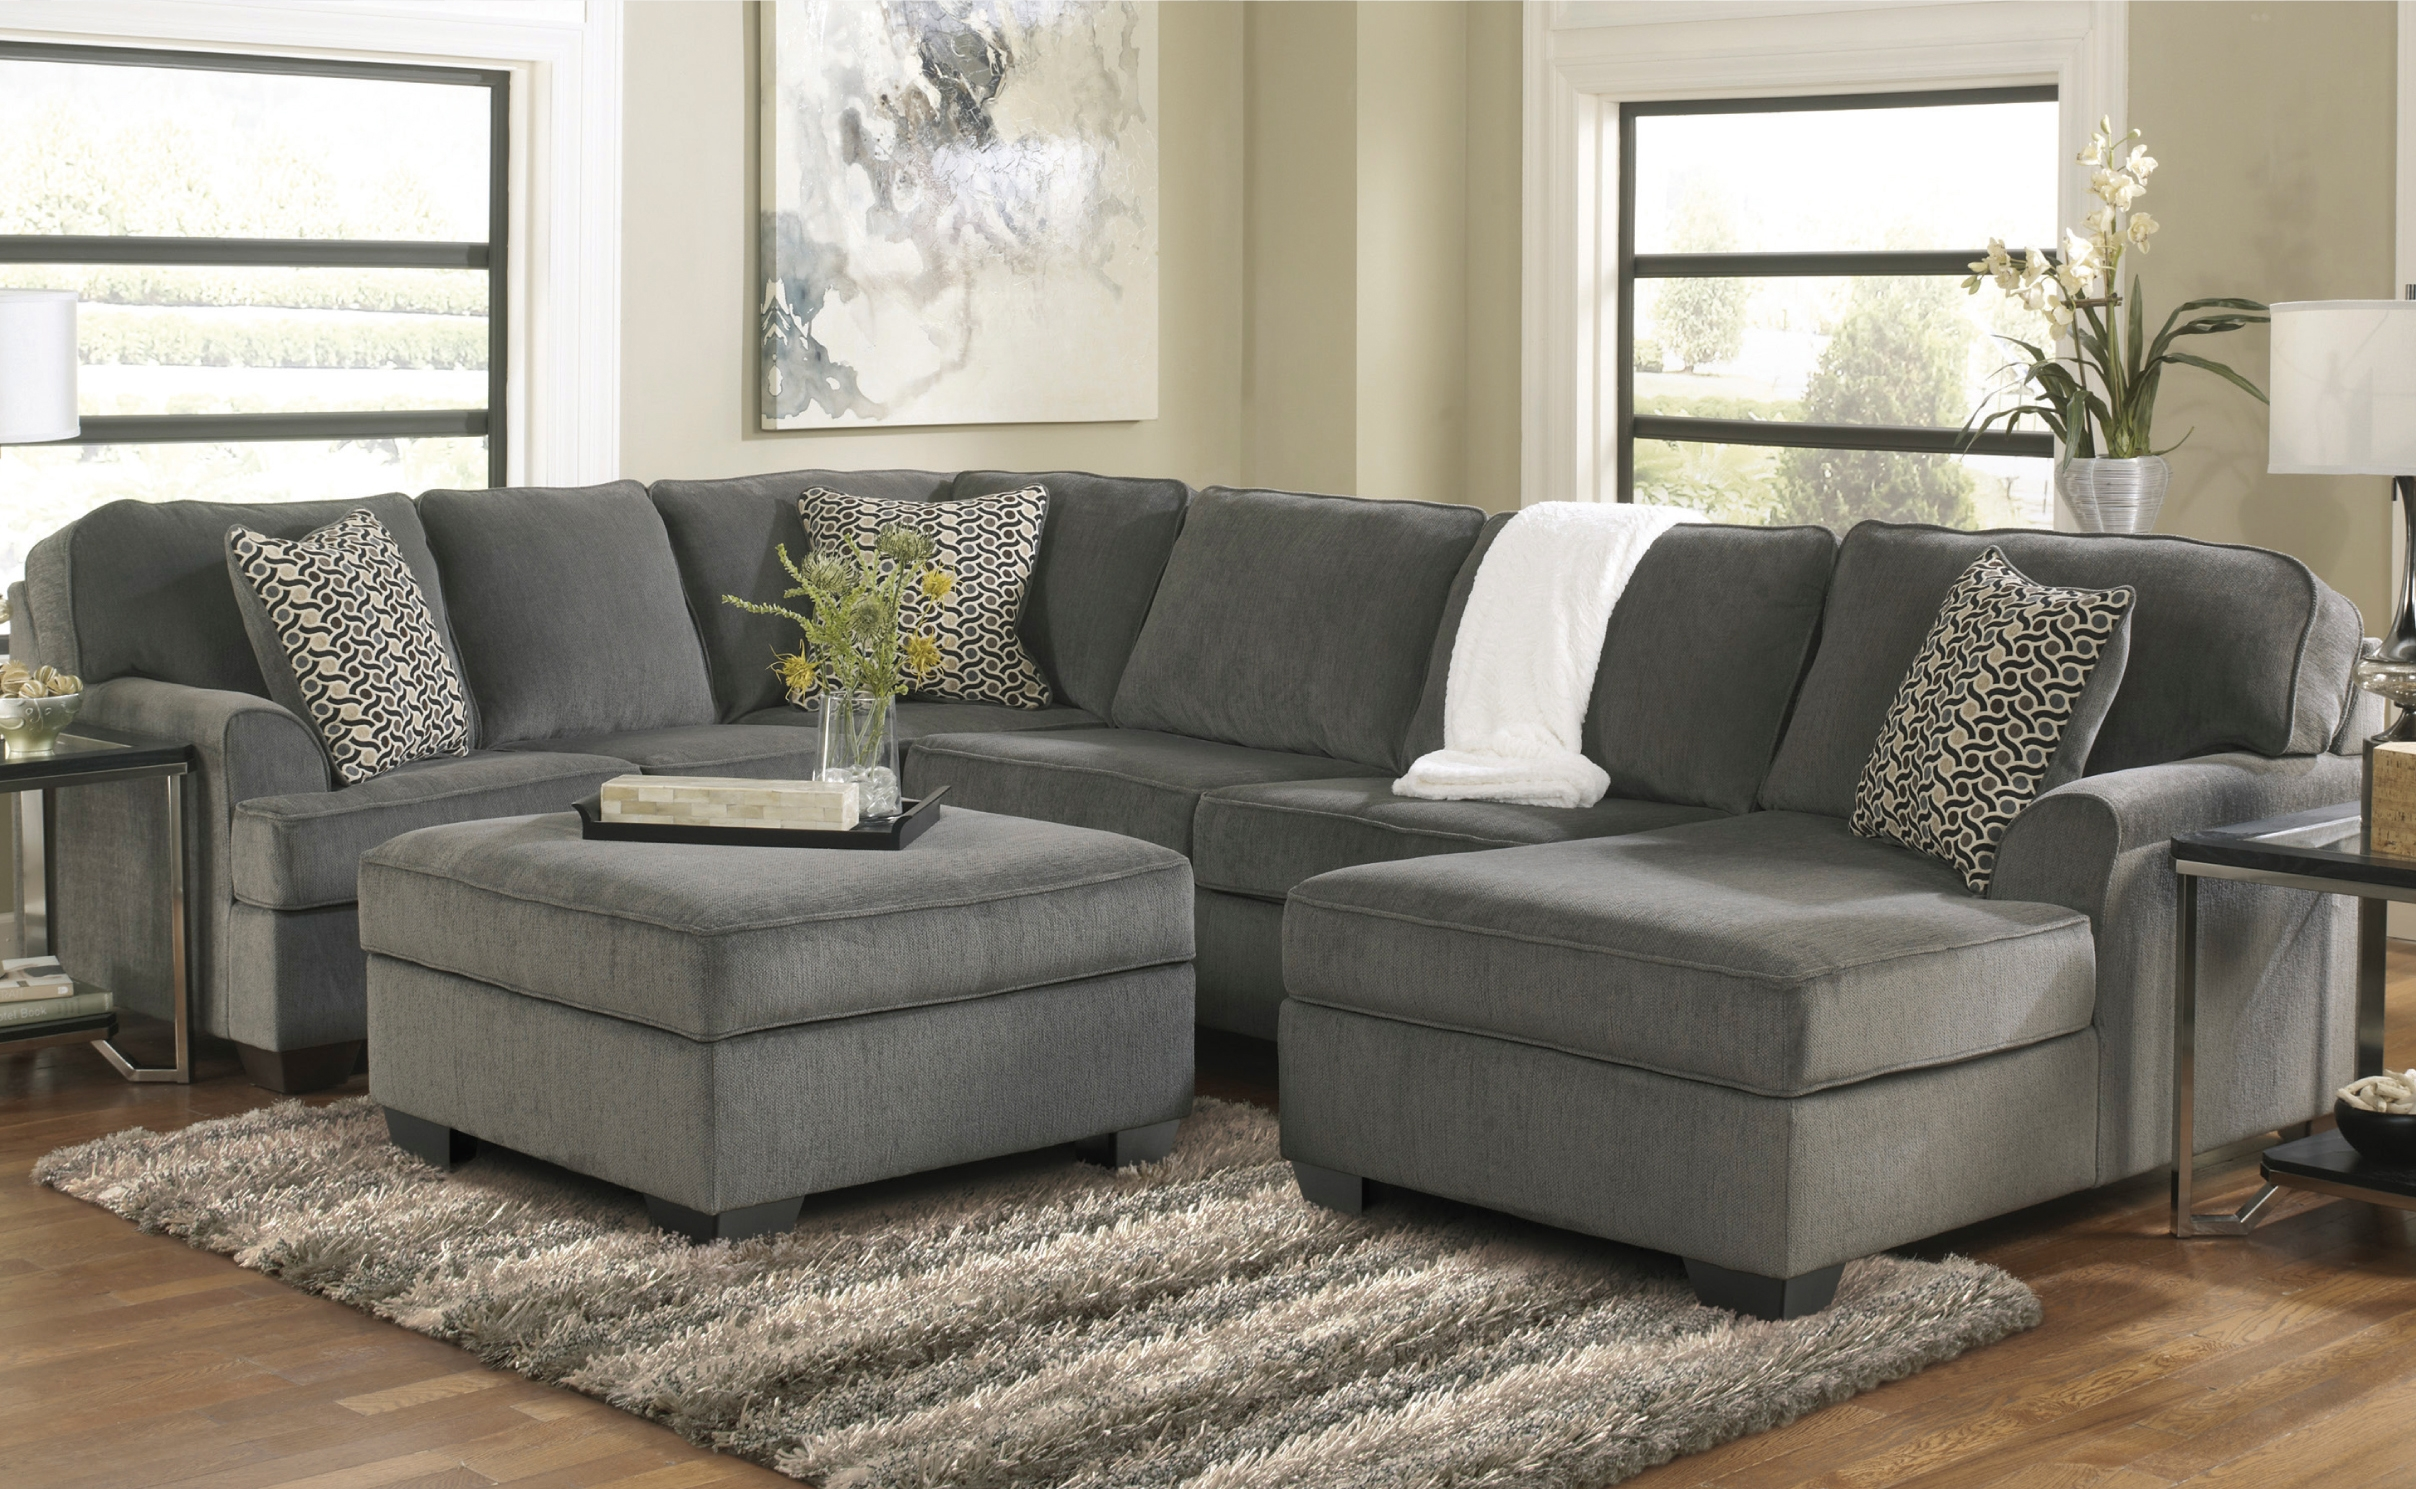 12 best ideas of closeout sectional sofas for Cheap furniture and decor